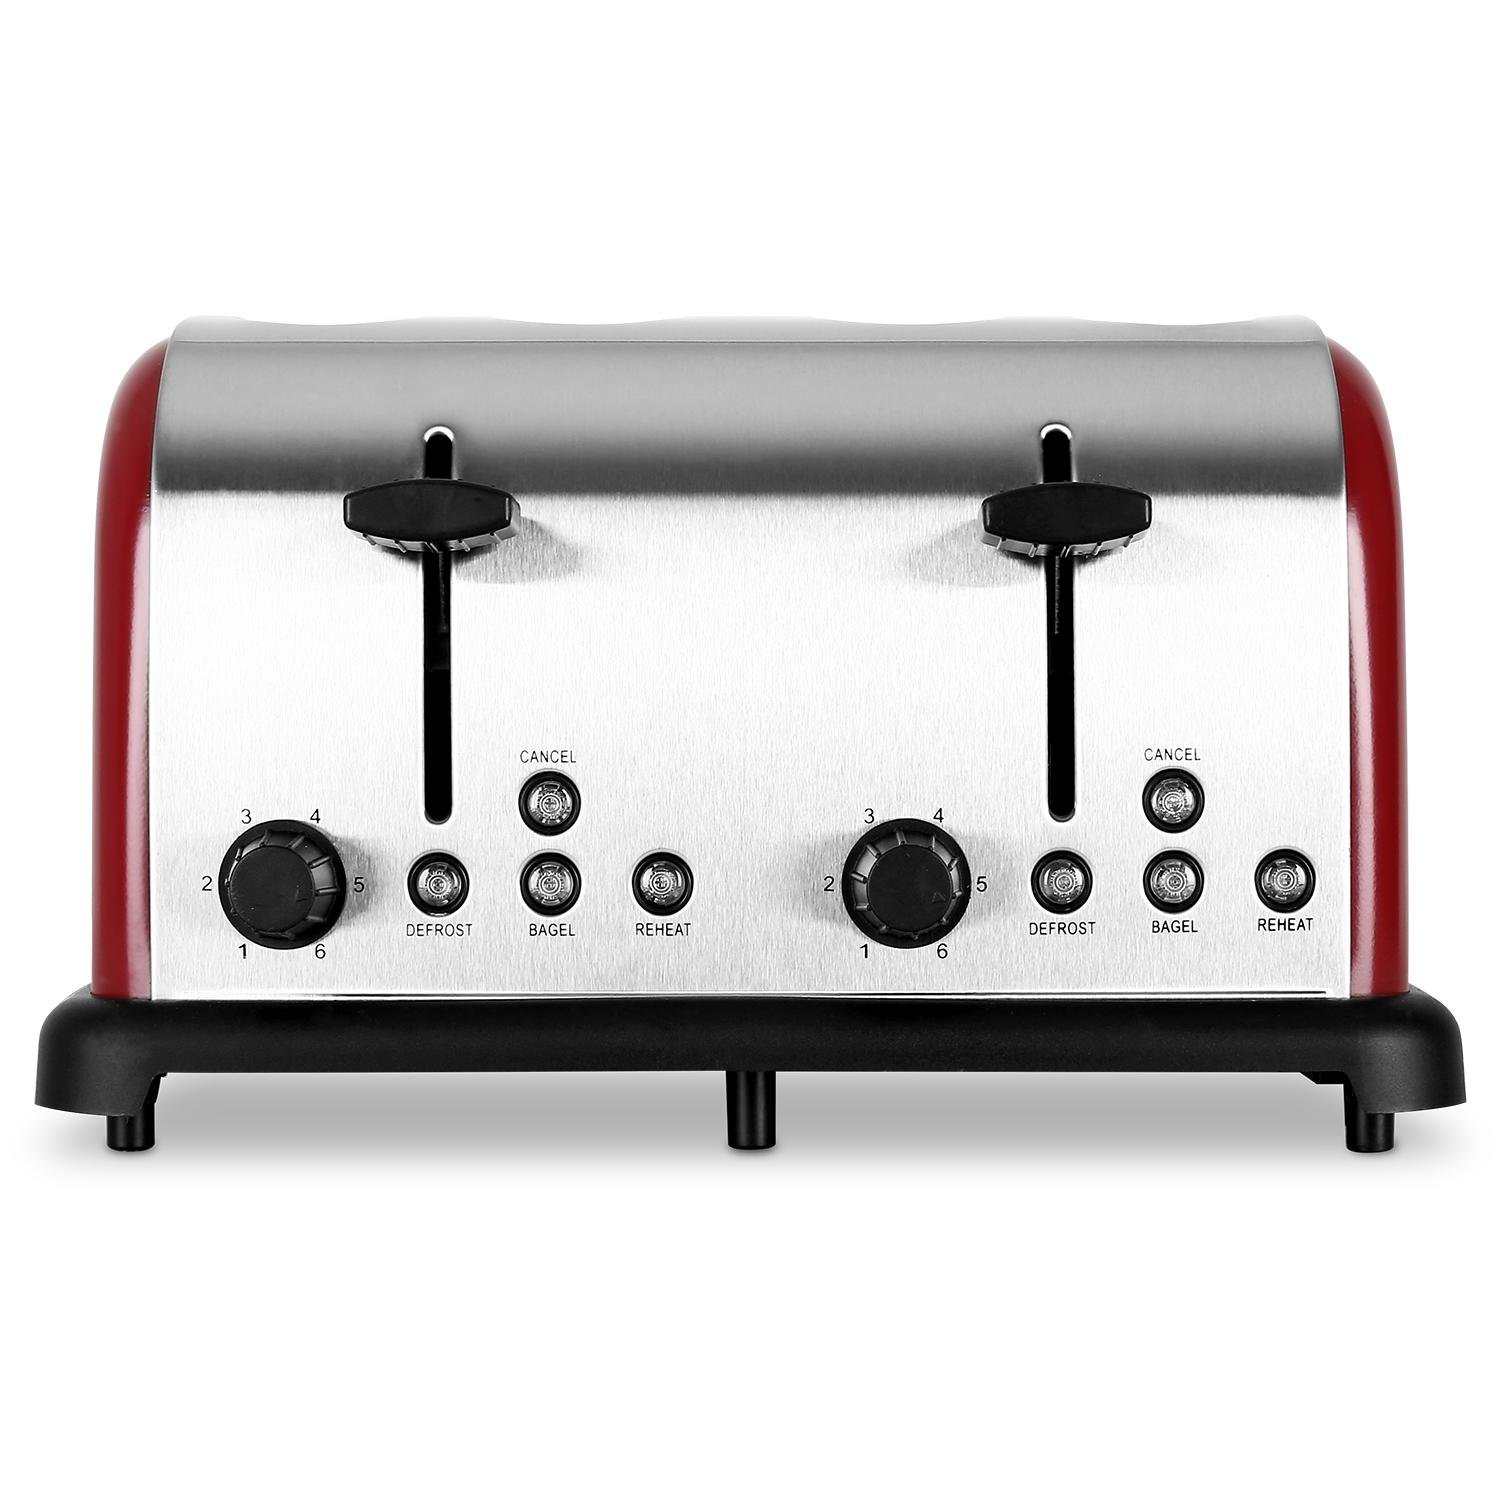 Klarstein 4-Slice Toaster • Stainless Steel • 6-Stage Adjustable Thermostat • 2 Extendable Crumb Collectors • 1650W • Bagel Function • Defrost & Reheat Functions • Warm Function • Silver 10004365